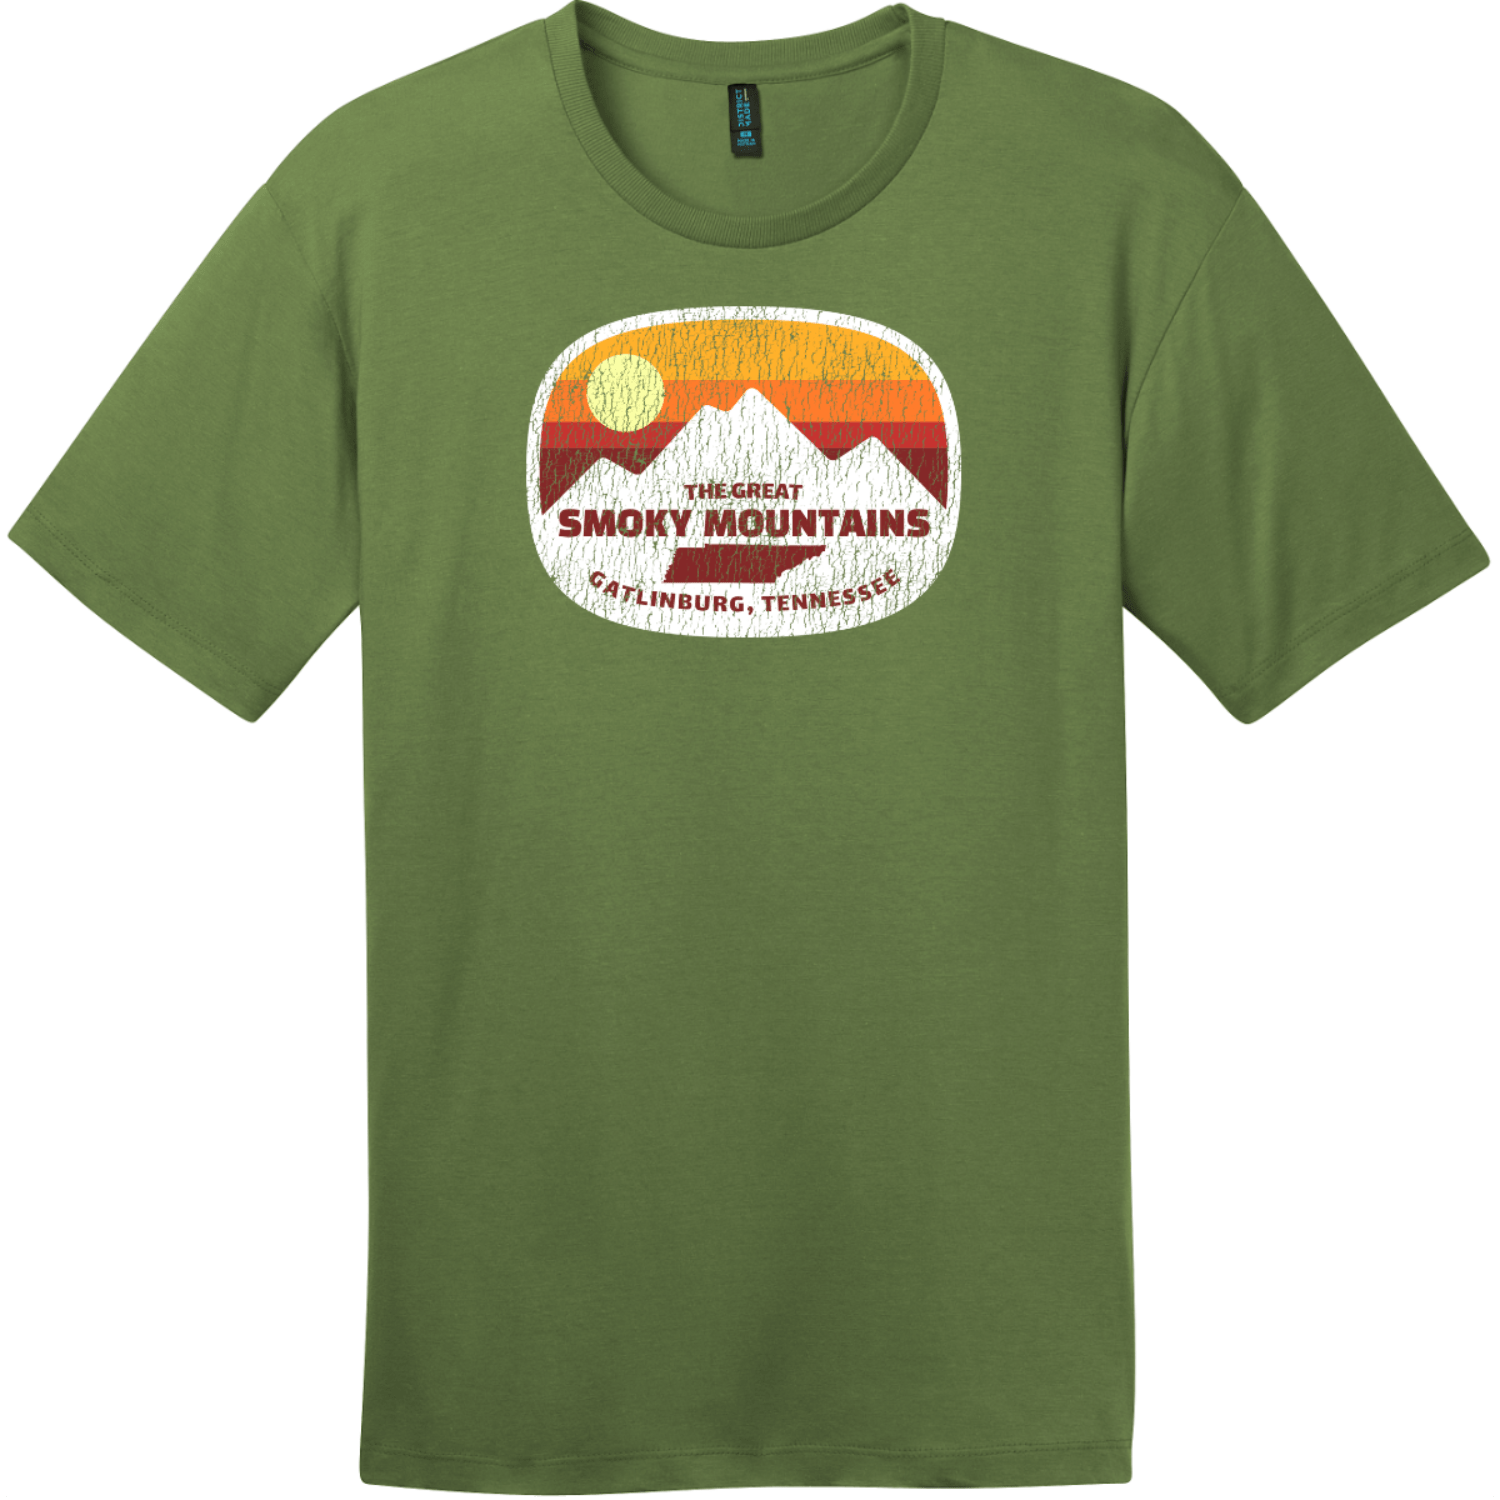 Gatlinburg Smoky Mountains Tennessee T-Shirt Fresh Fatigue District Perfect Weight Tee DT104